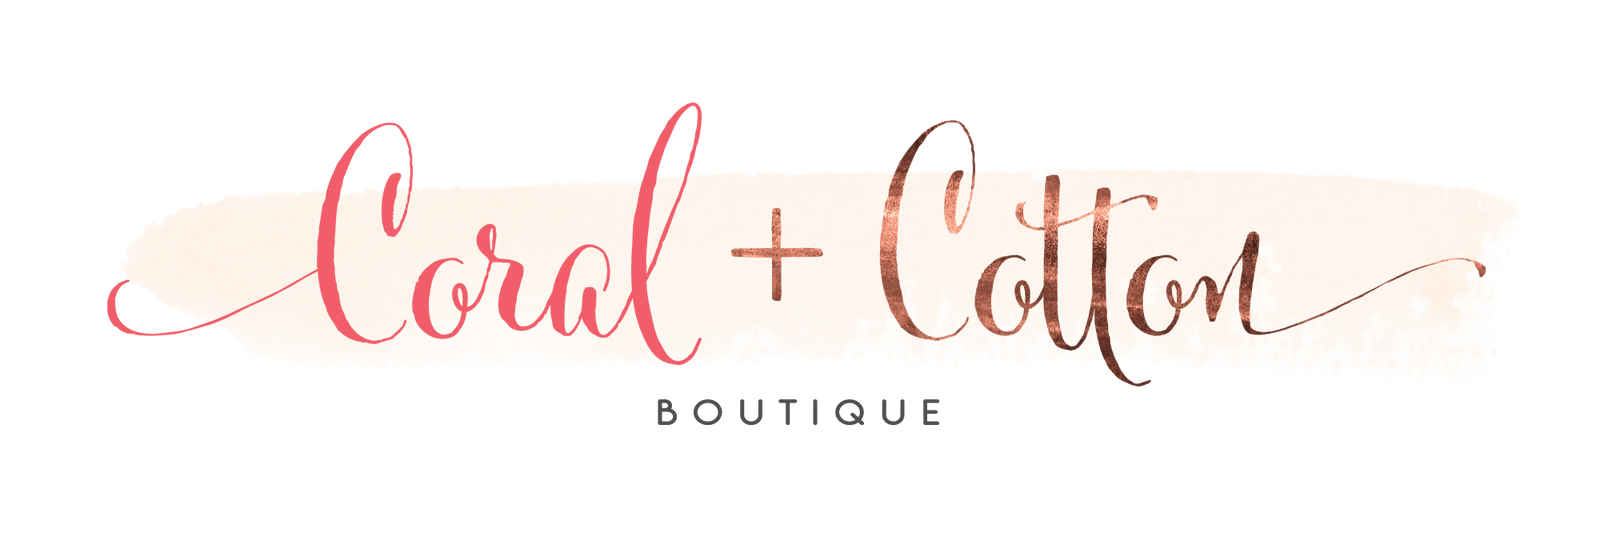 Coral + Cotton Boutique